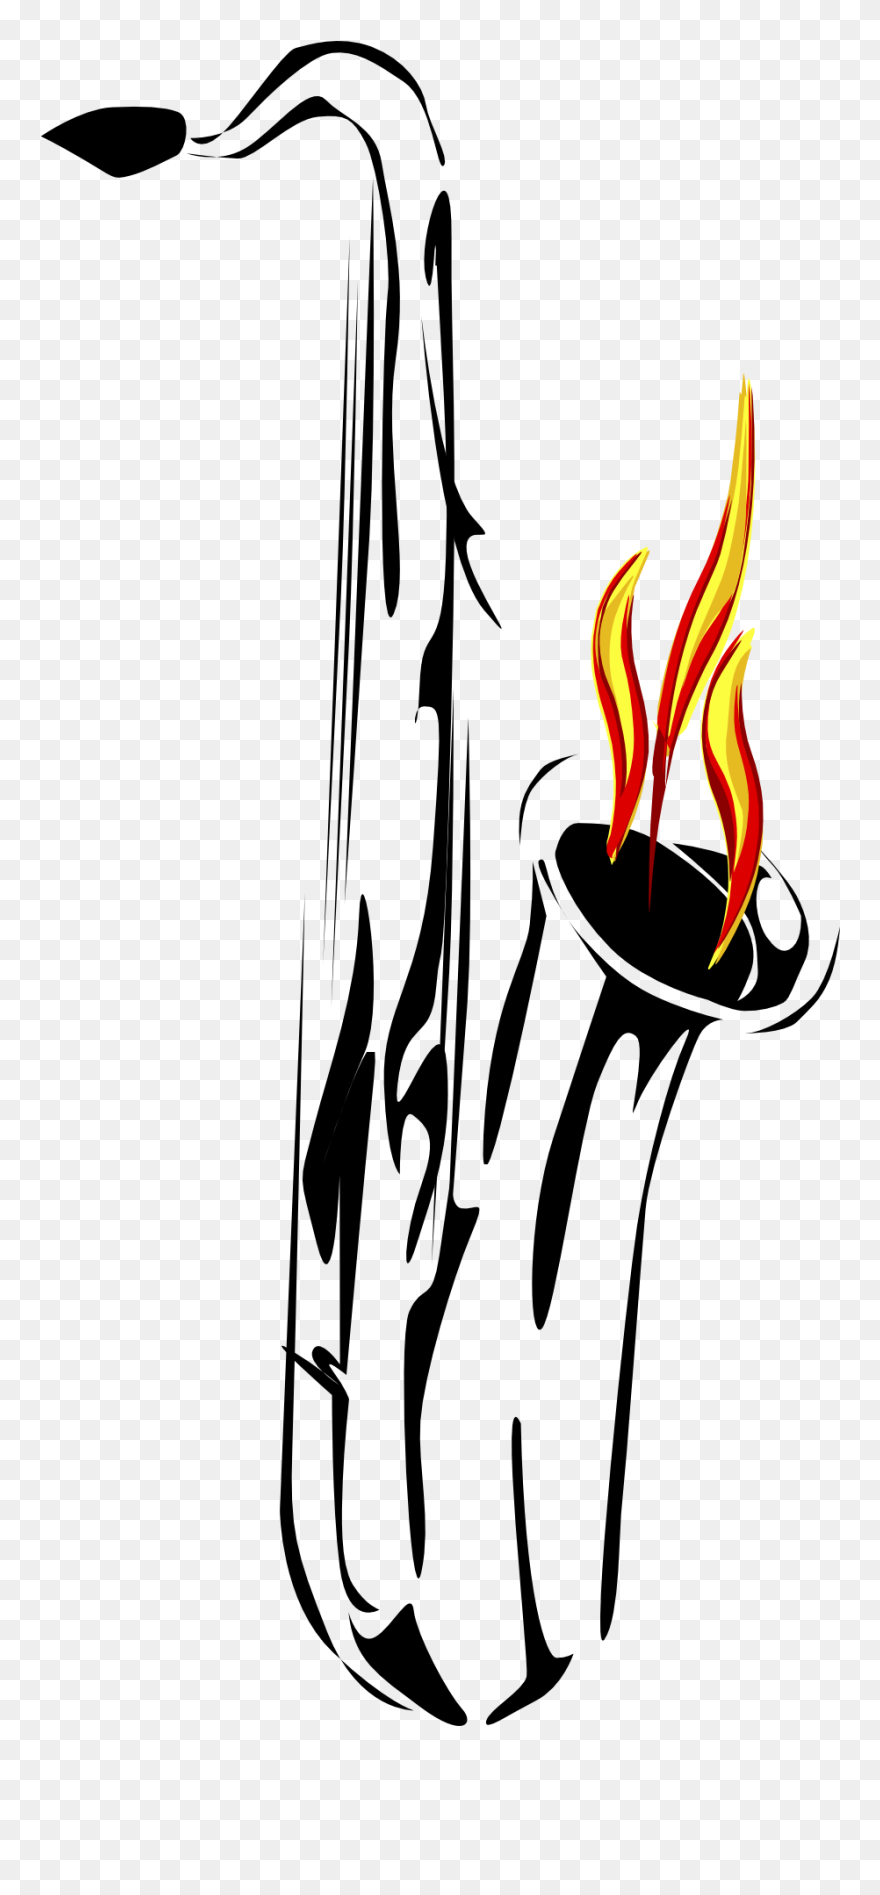 ec730e663 Saxophone Flame Reflection Art Png Image - Saxophone Tattoo Png Clipart